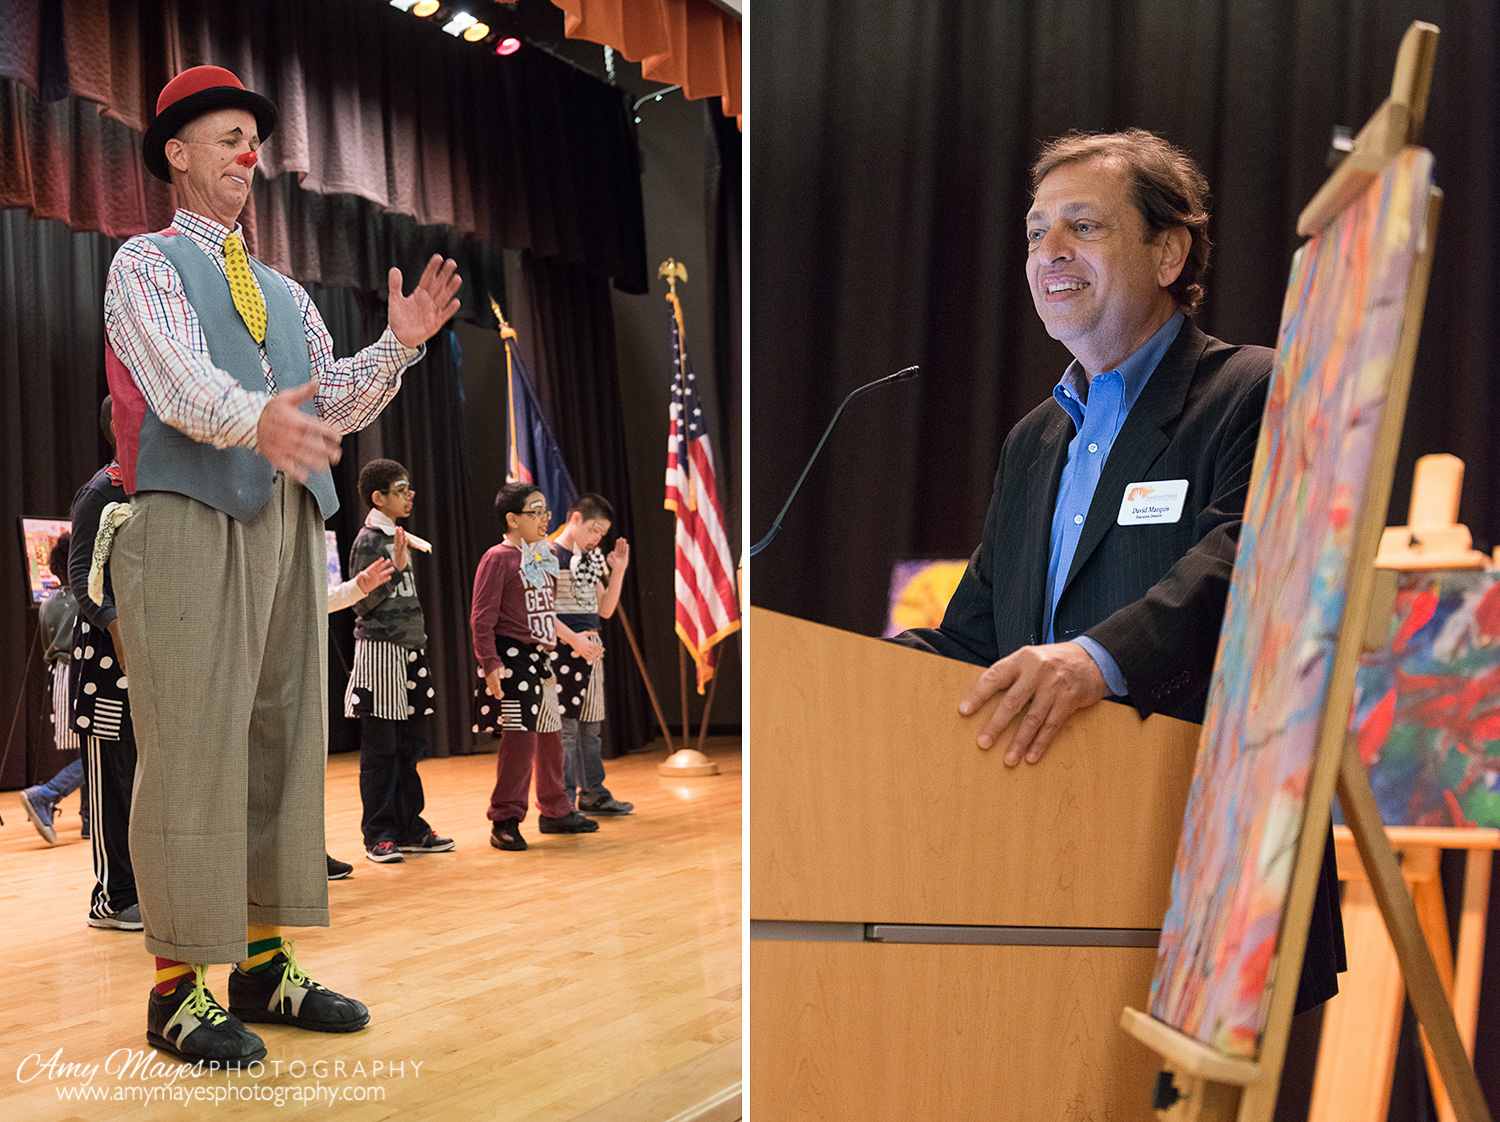 Left: Clown Performance  Right: David Marquis, Executive Director